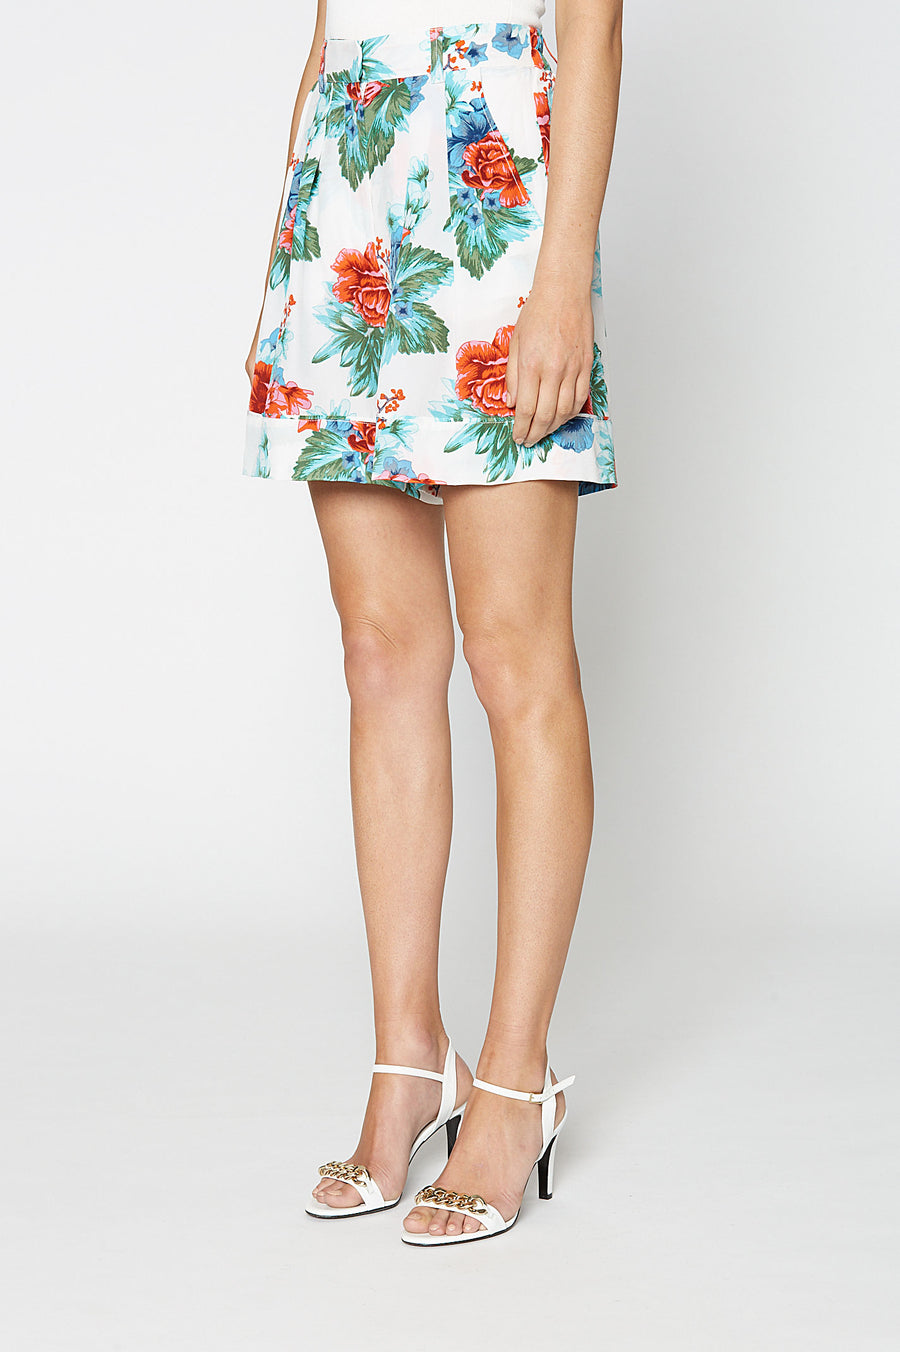 CDC MYSTIC FLORAL SHORT BLUE, BLUE color